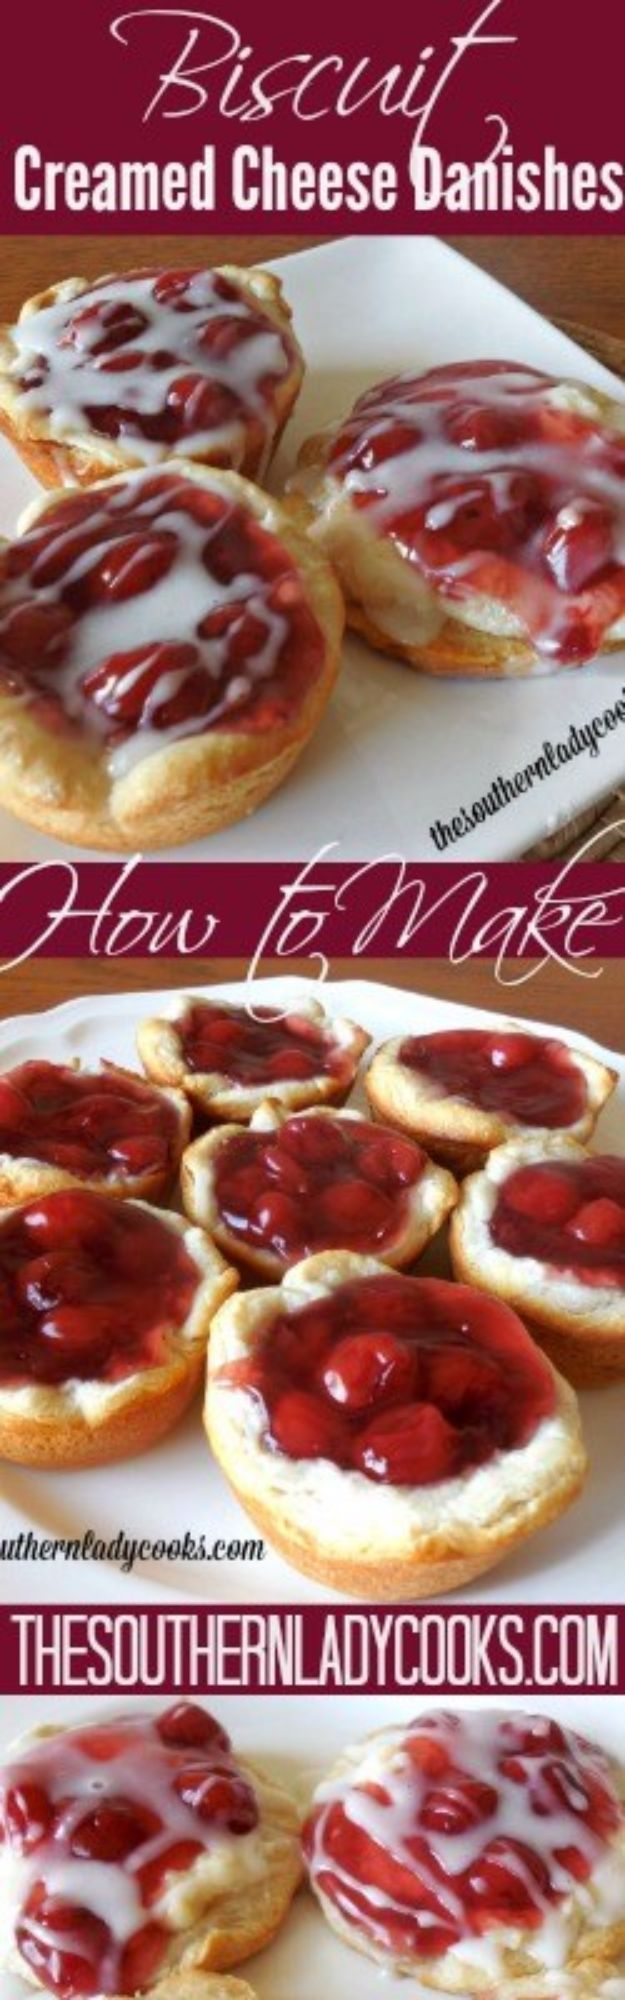 Best Canned Biscuit Recipes - Biscuit Creamed Cheese Danishes - Cool DIY Recipe Ideas You Can Make With A Can of Biscuits - Easy Breakfast, Lunch, Dinner and Desserts You Can Make From Pillsbury Pull Apart Biscuits - Garlic, Sour Cream, Ground Beef, Sweet and Savory, Ideas with Cheese - Delicious Meals on A Budget With Step by Step Tutorials